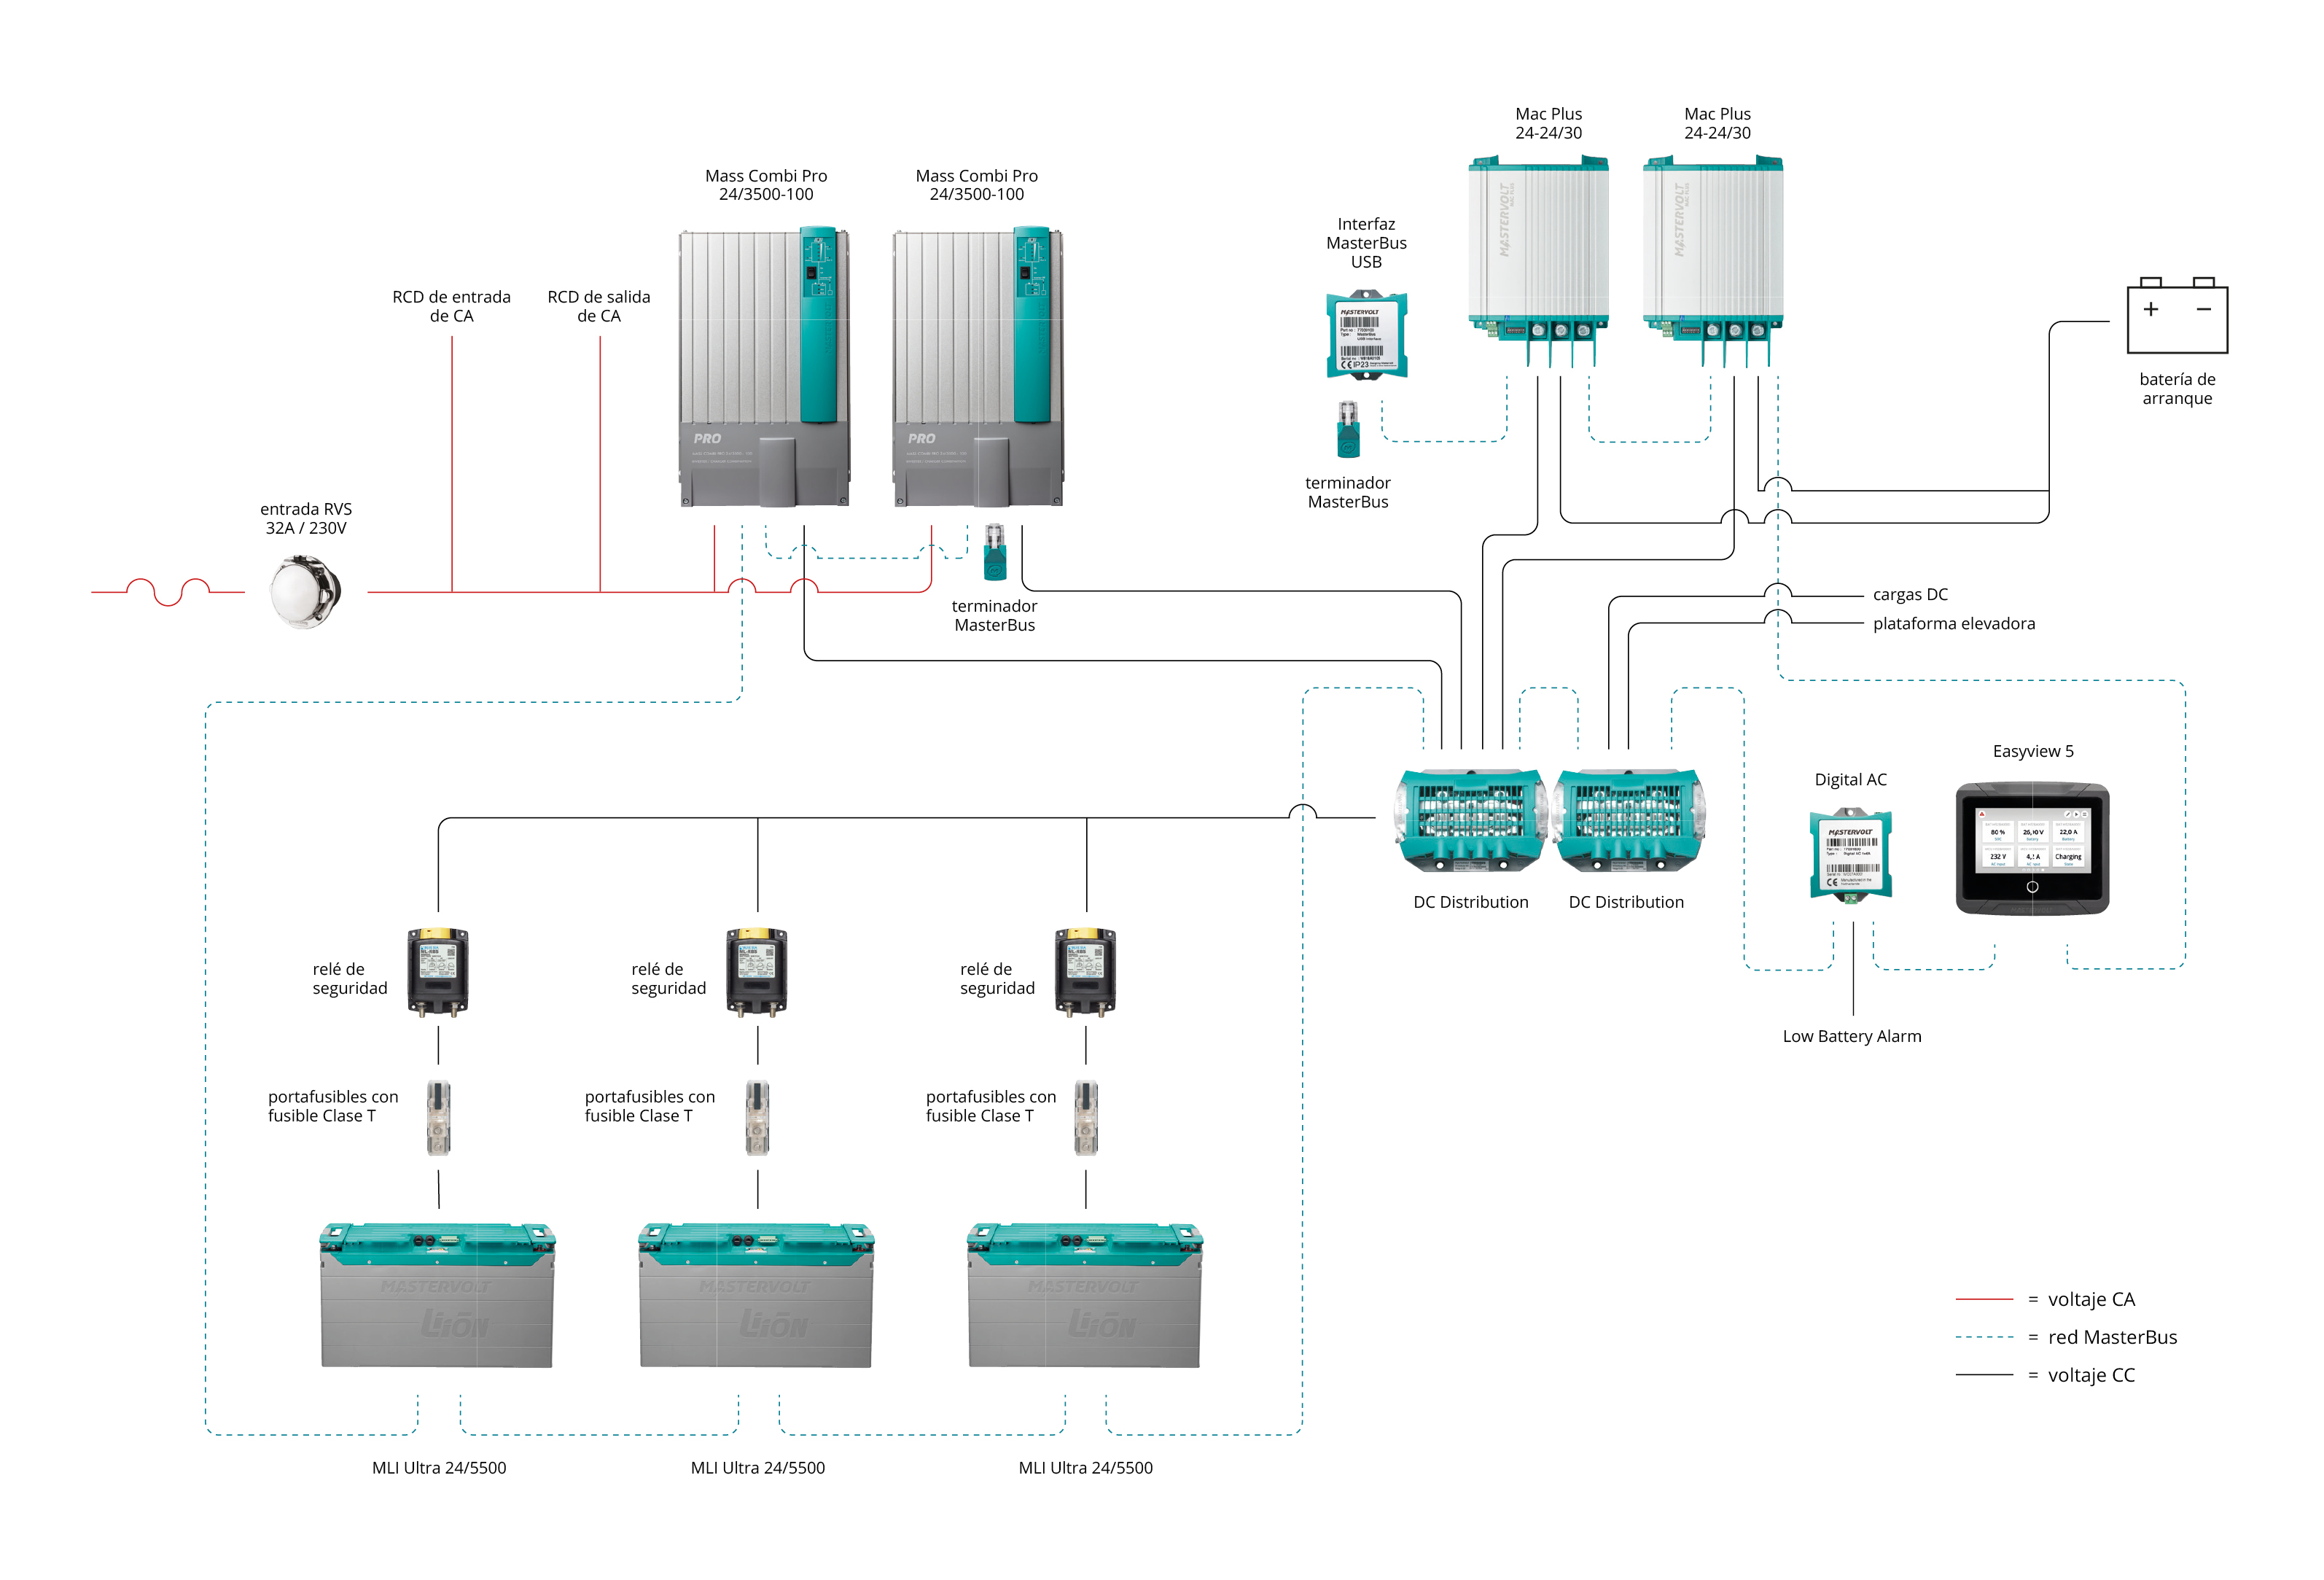 PMR systemdrawing